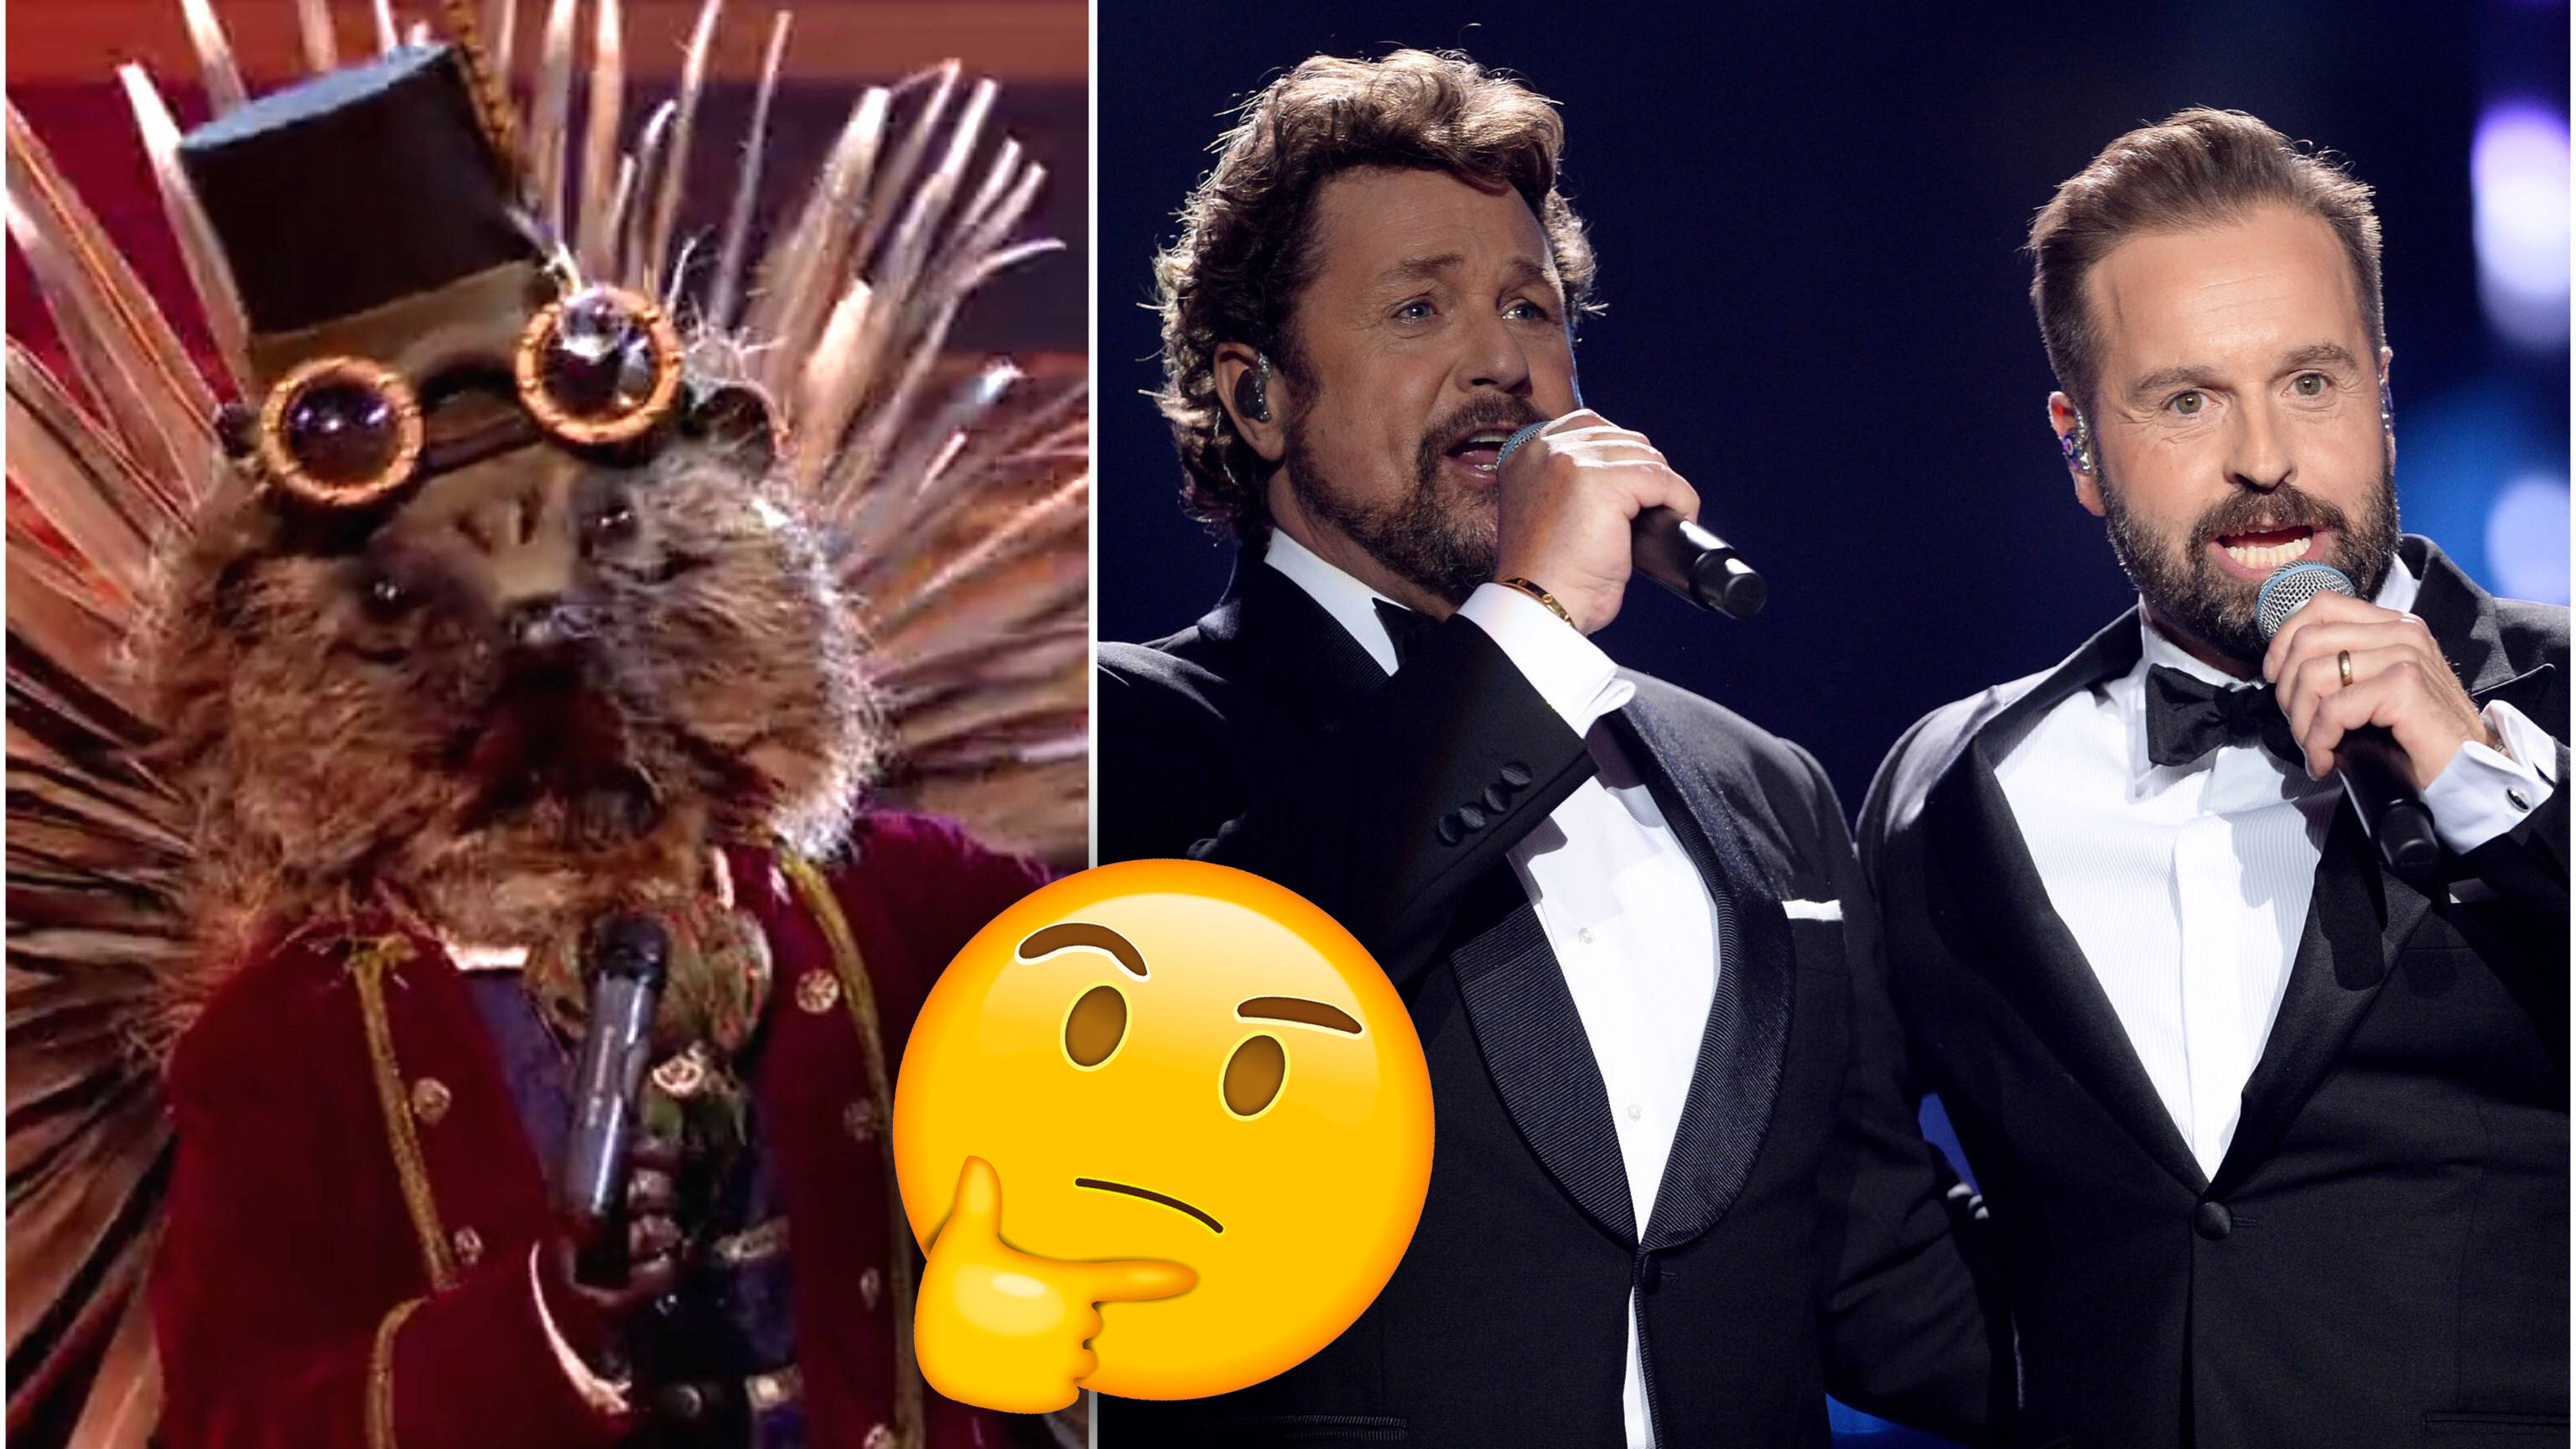 Fans of The Masked Singer are convinced that 'Hedgehog' is Alfie Boe or Michael Ball